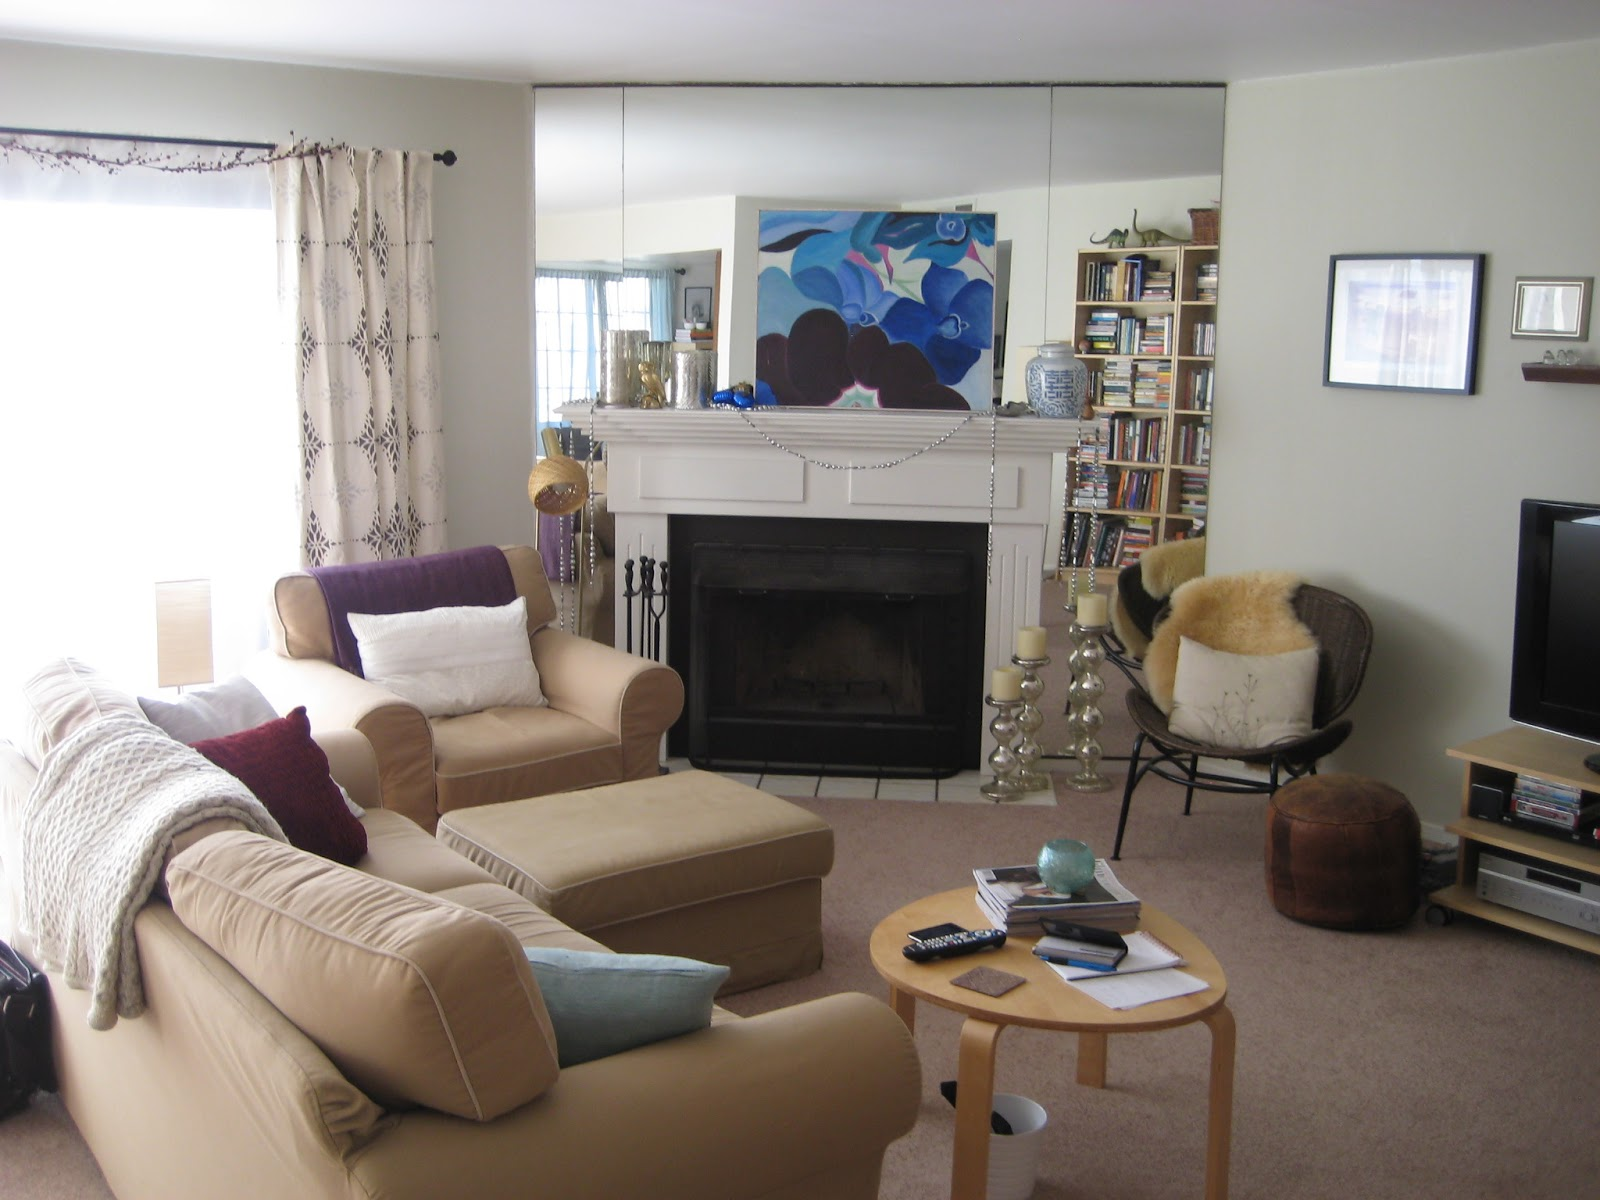 Very Impressive portraiture of Diving for Pearls: Condo Makeover: Part 2 with #2C426F color and 1600x1200 pixels